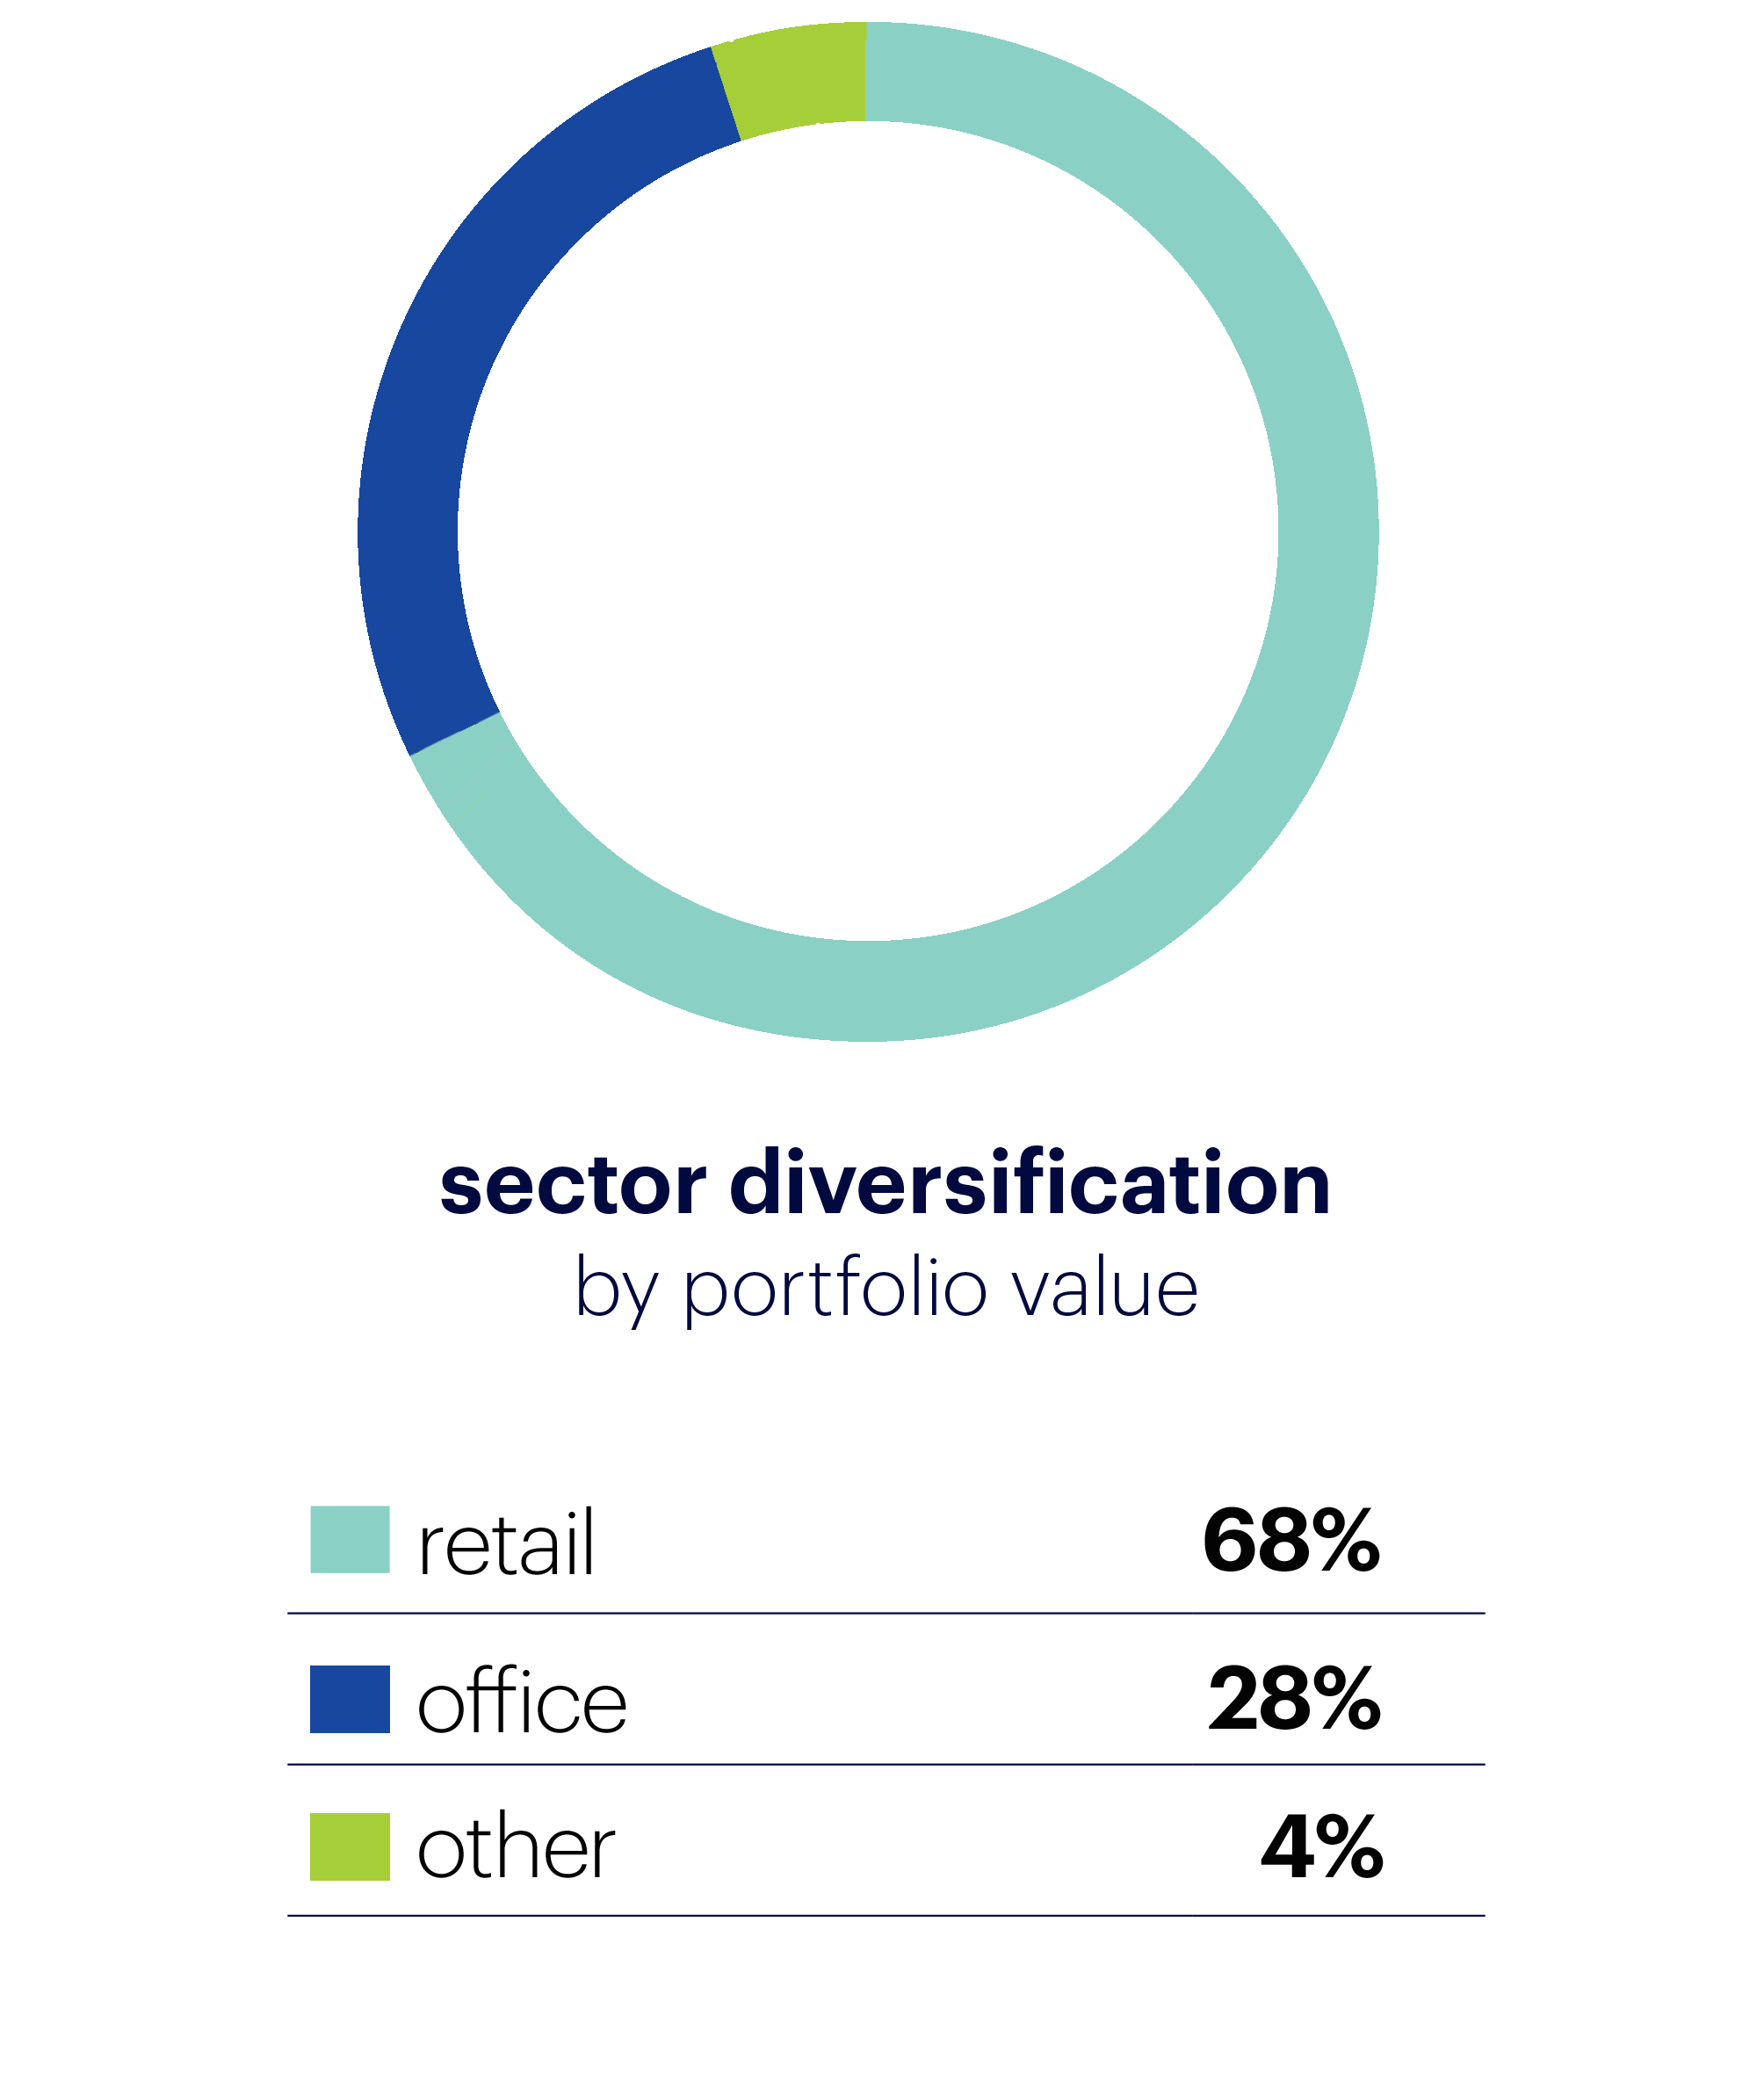 sector diversification